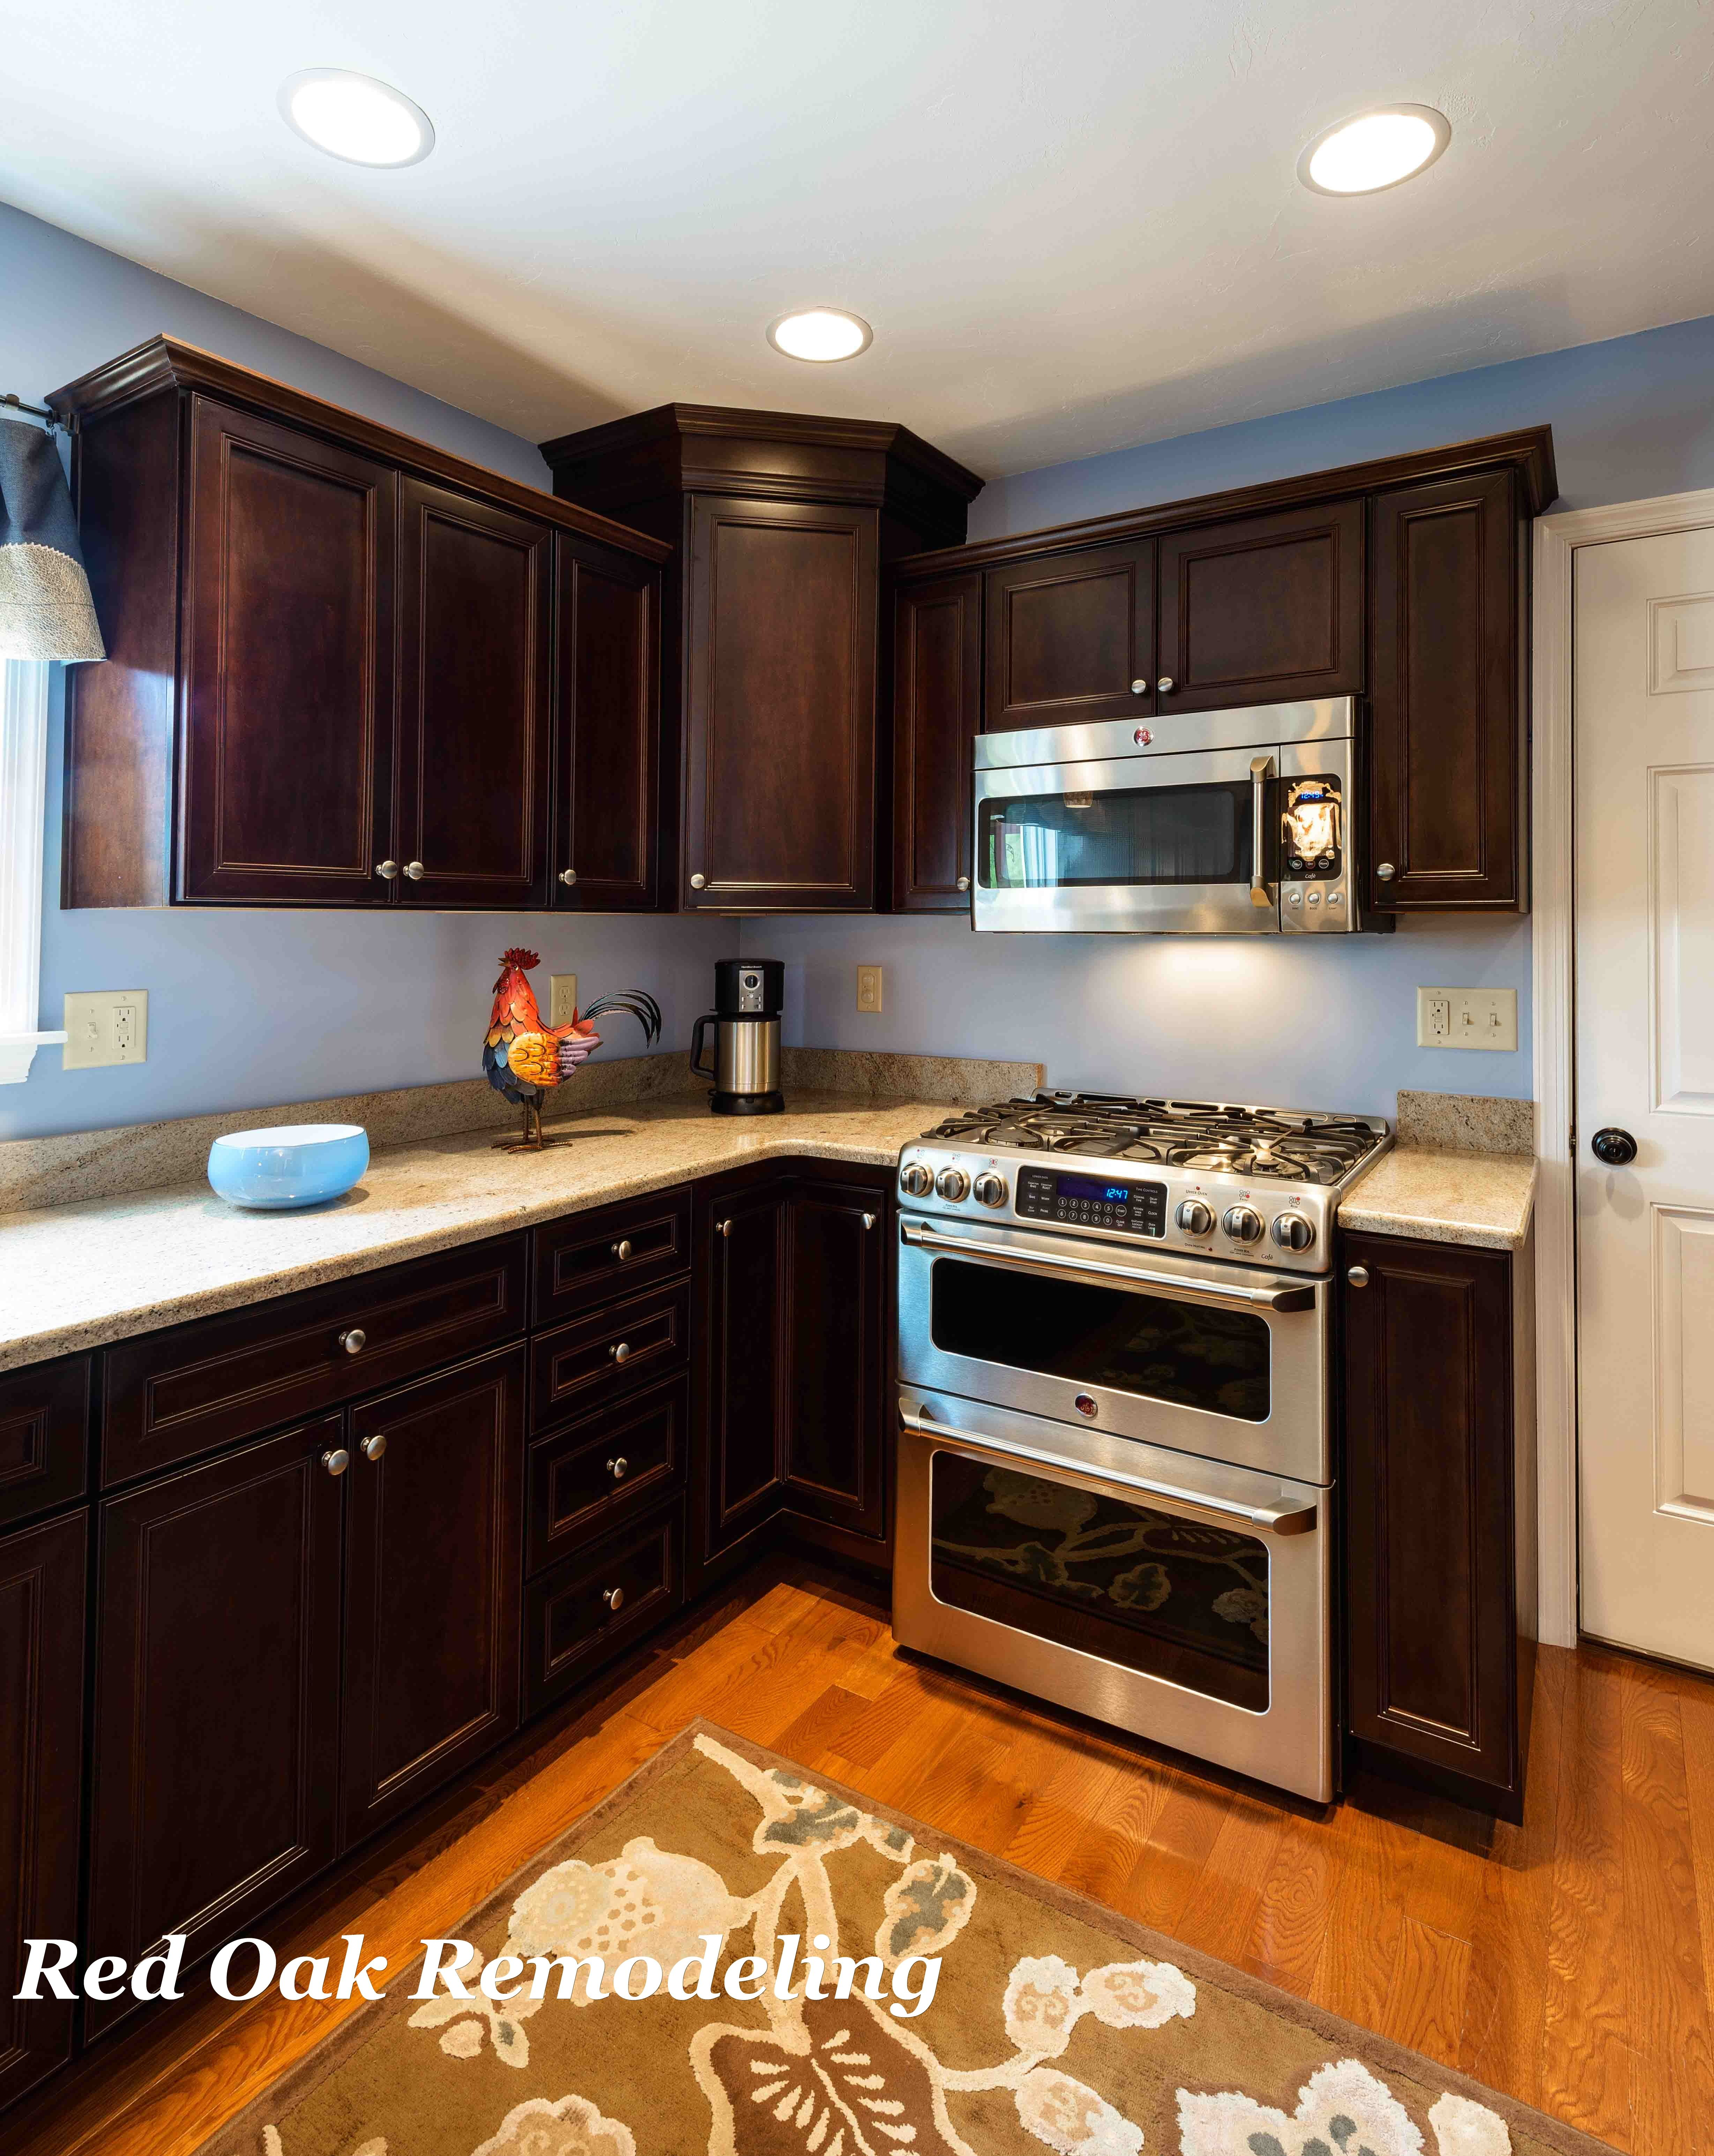 Maple Cabinets With A Coffee Stain Finish We Ve Completely Changed Course From The White Cabinets I Thought I W My Home Design Kitchen Remodel Home Comforts